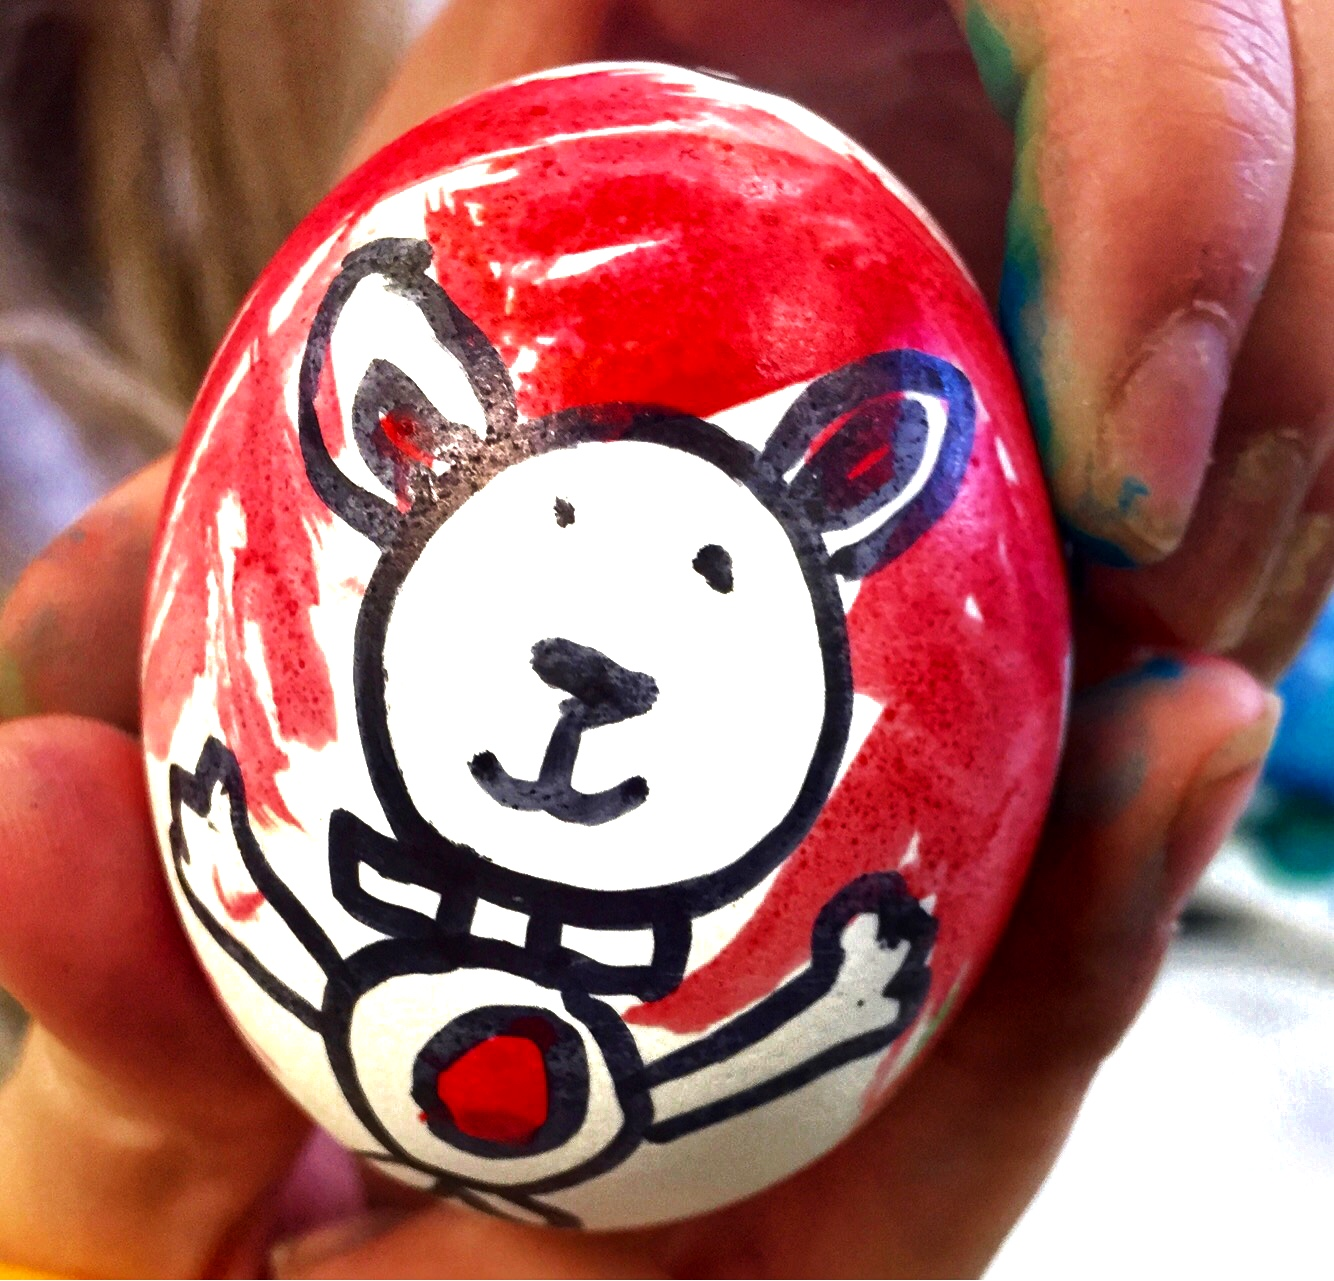 Coloring eggs with kids